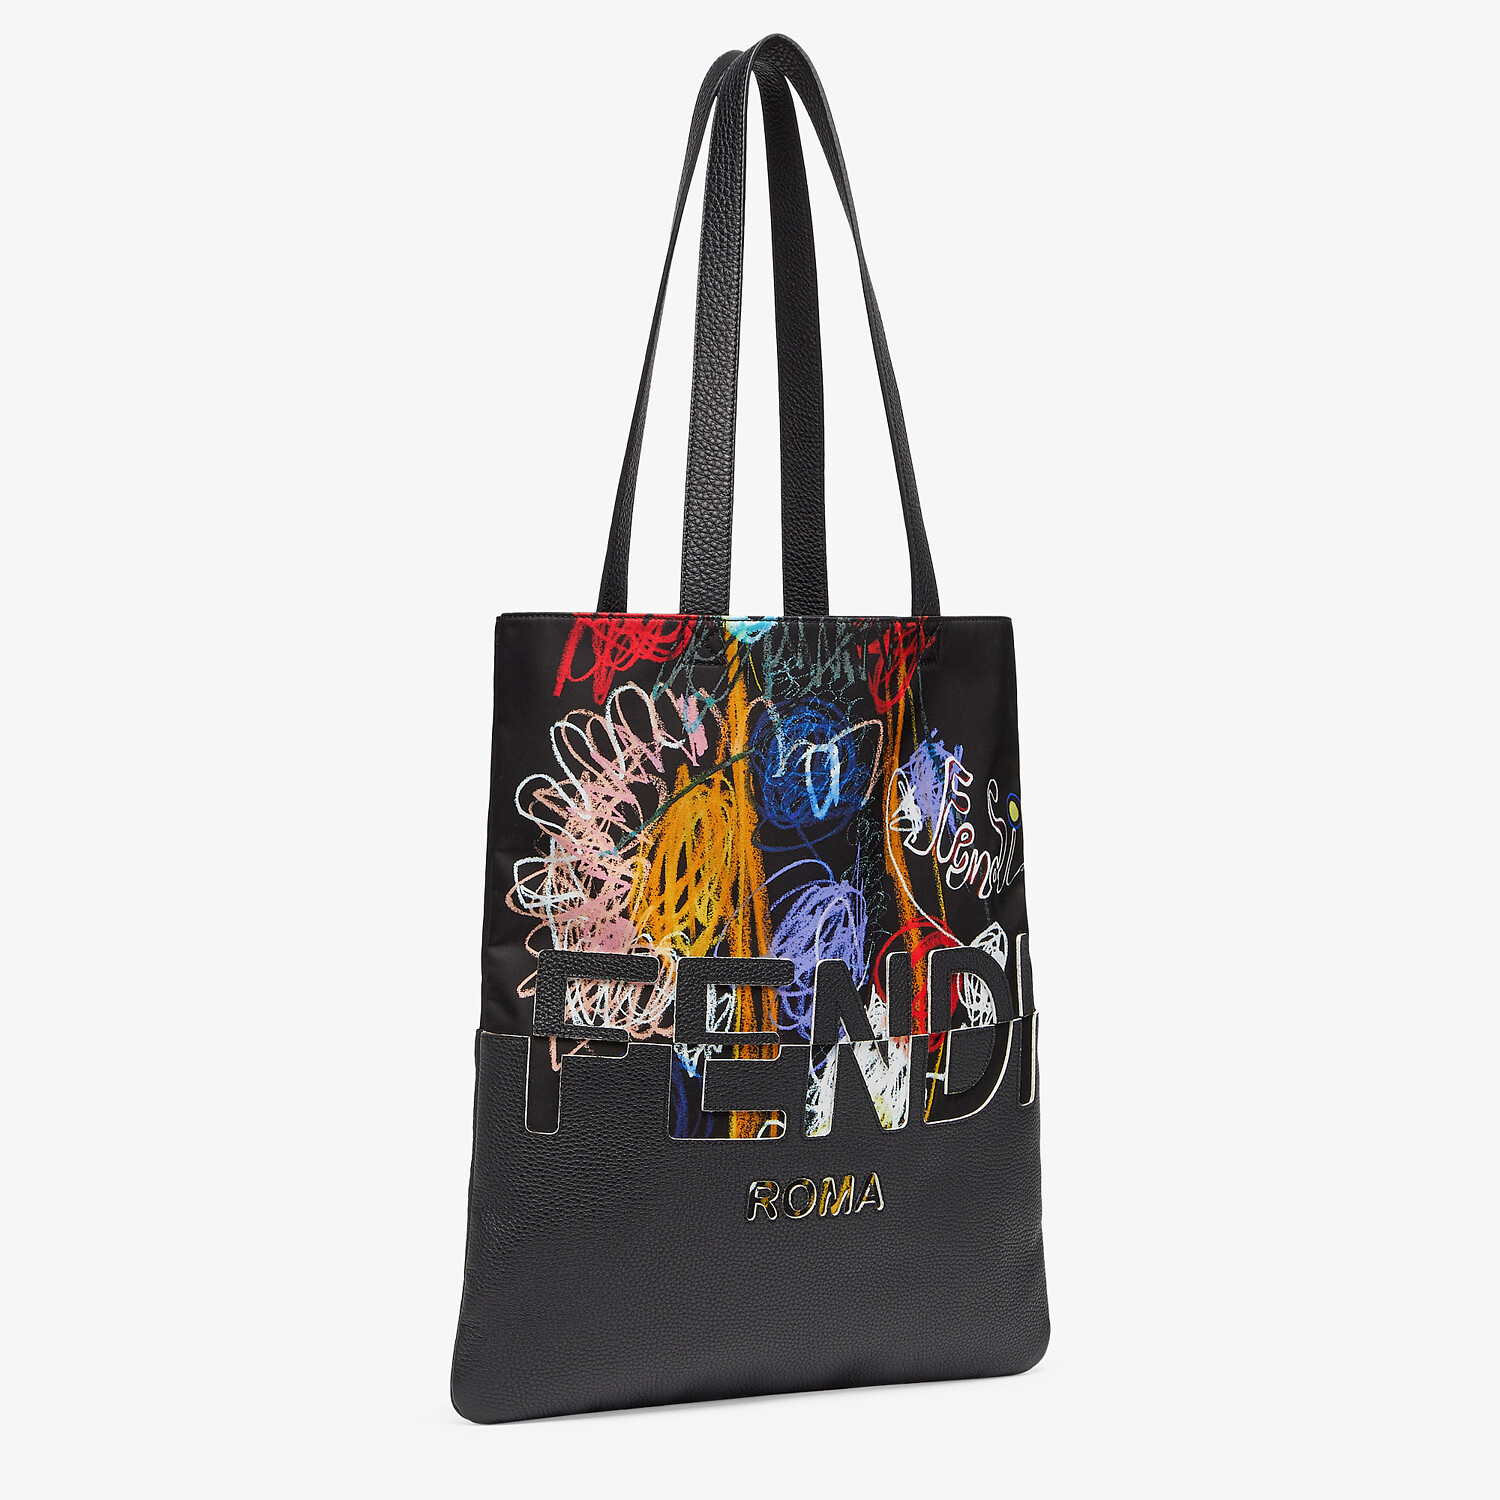 FENDI FLAT SHOPPING BAG - Multicolor nylon and leather bag - view 2 detail